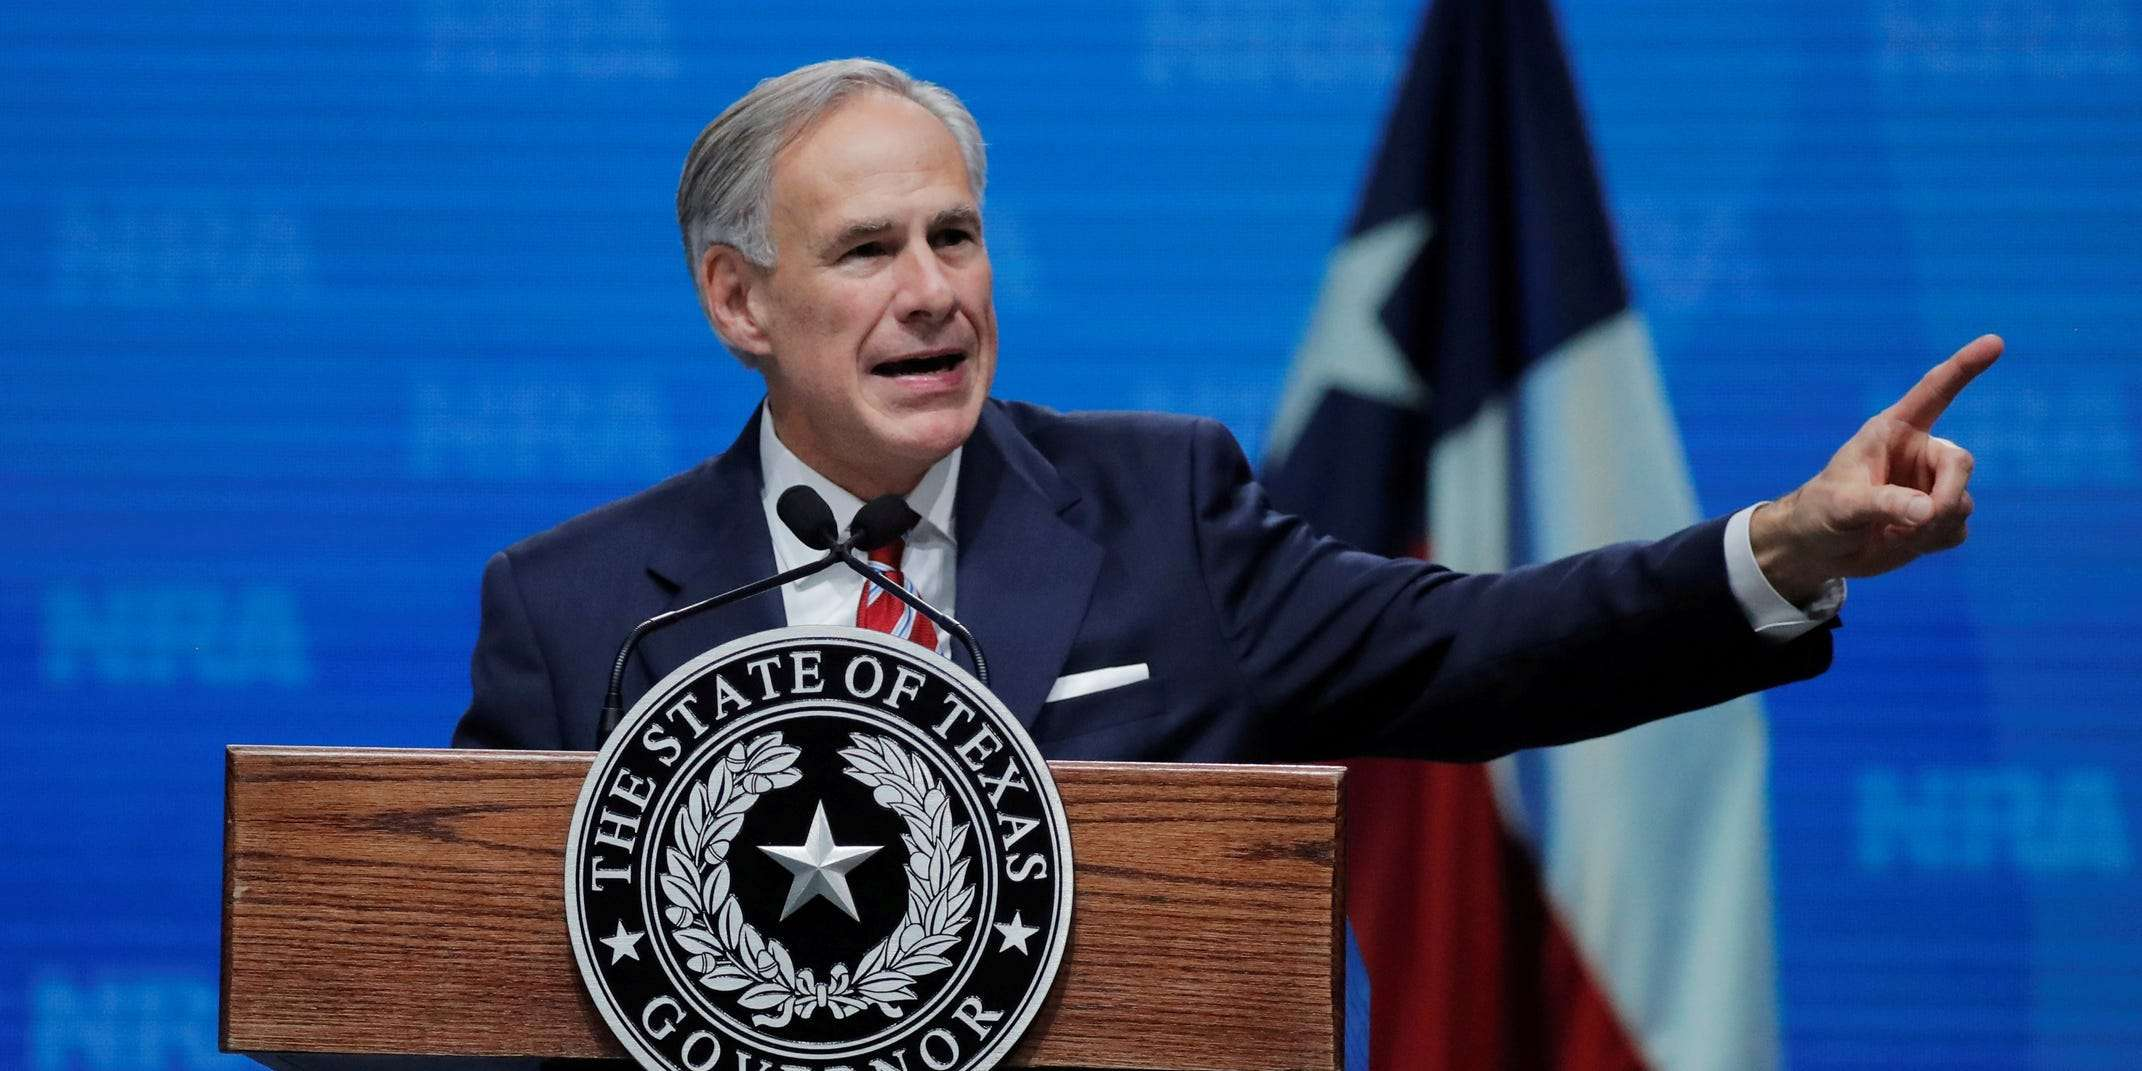 Gov. Greg Abbott's claim that Texas is 'very close' to herd immunity is not 'even close' to being true, says expert